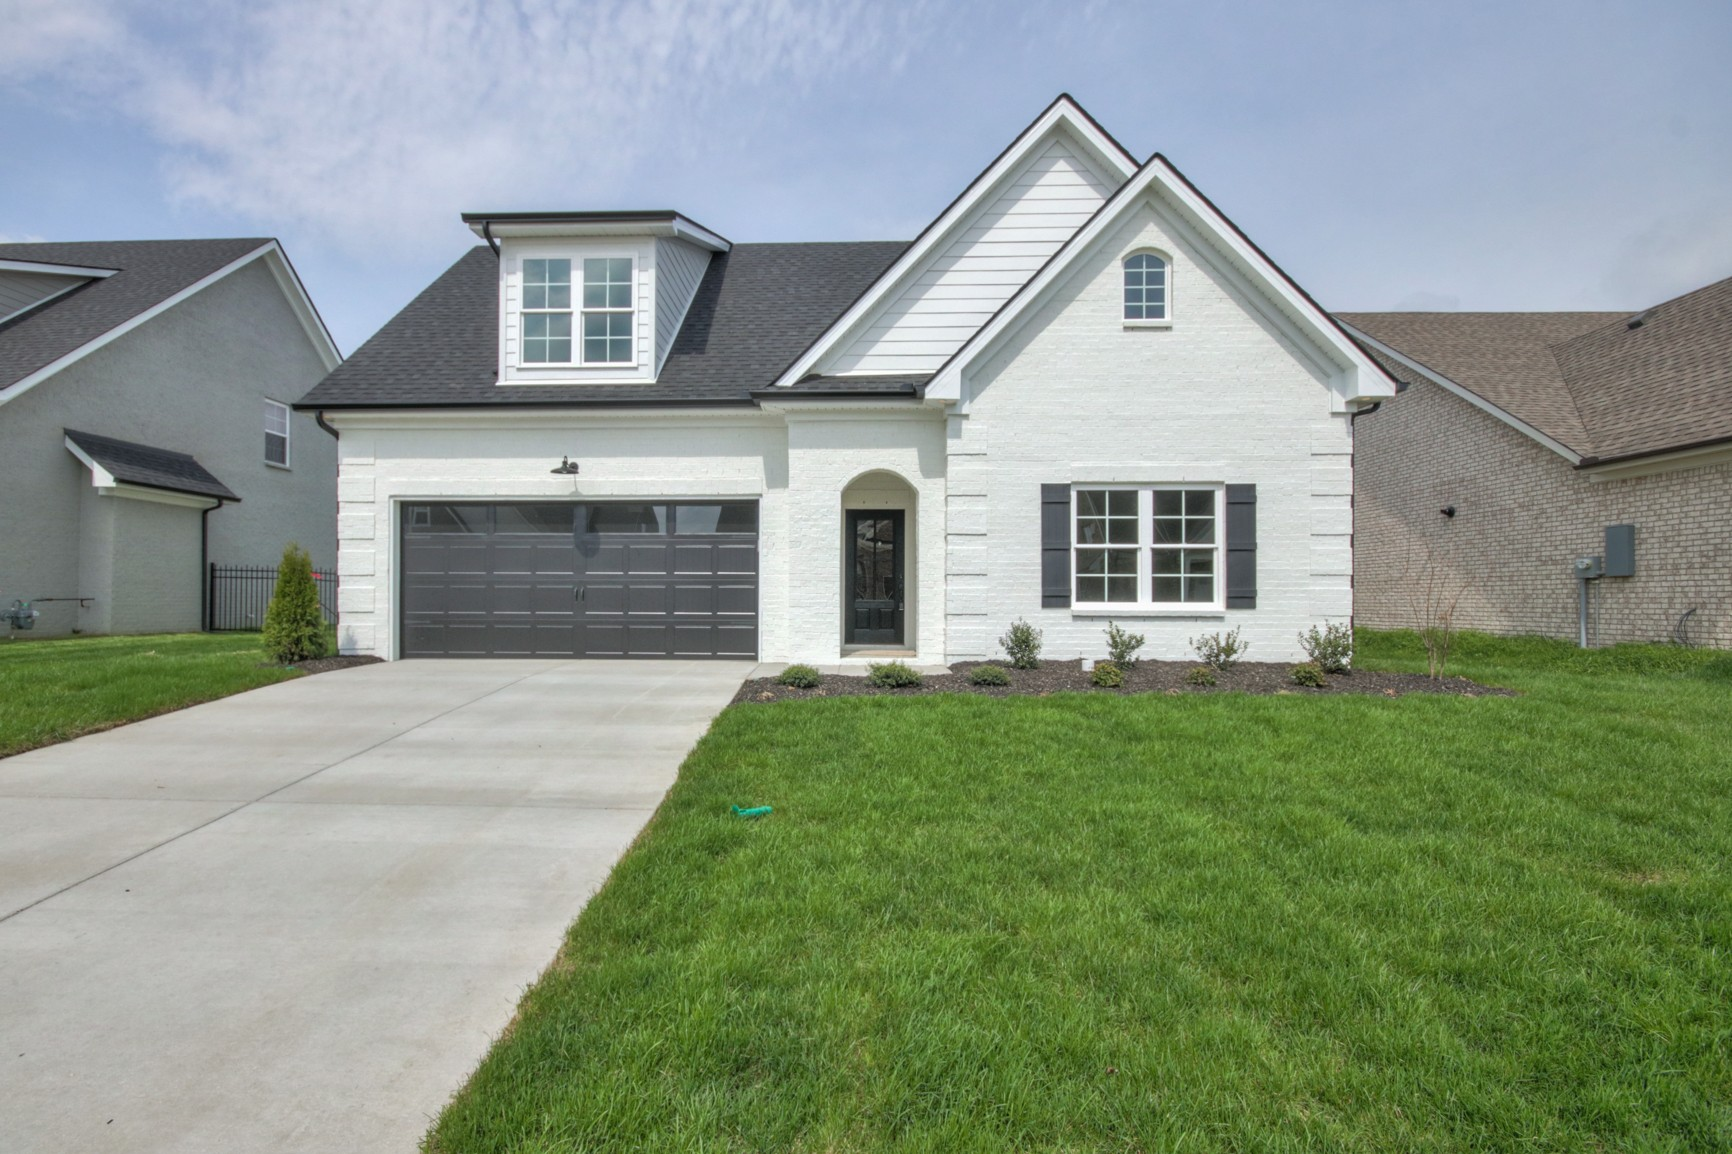 3939 Runyan Cove (Lot 24), Murfreesboro, TN 37127 - Murfreesboro, TN real estate listing